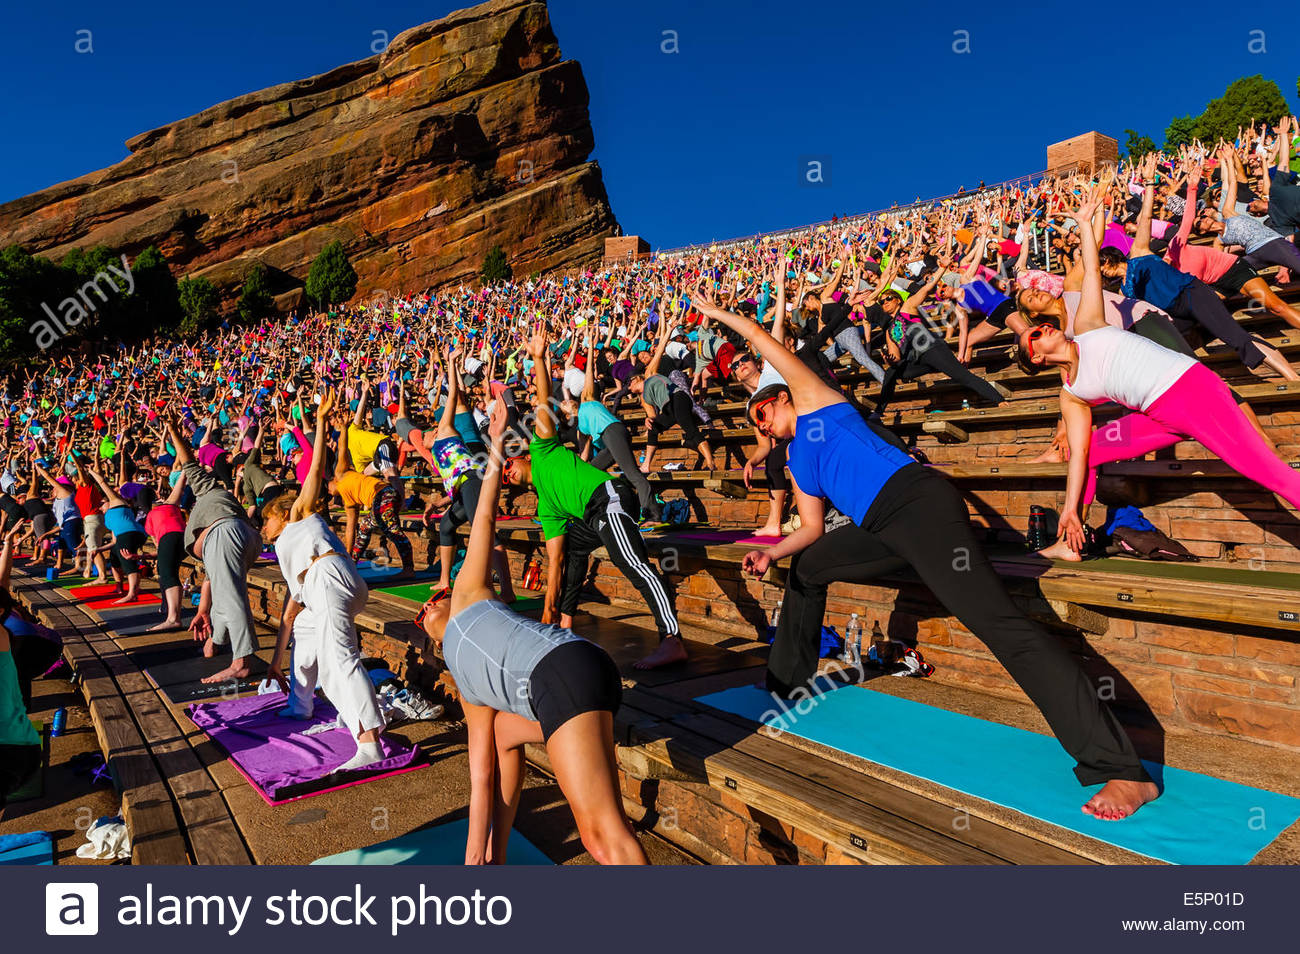 Yoga On The Rocks 2000 People Doing Yoga Together At Red Rocks Stock Photo Alamy